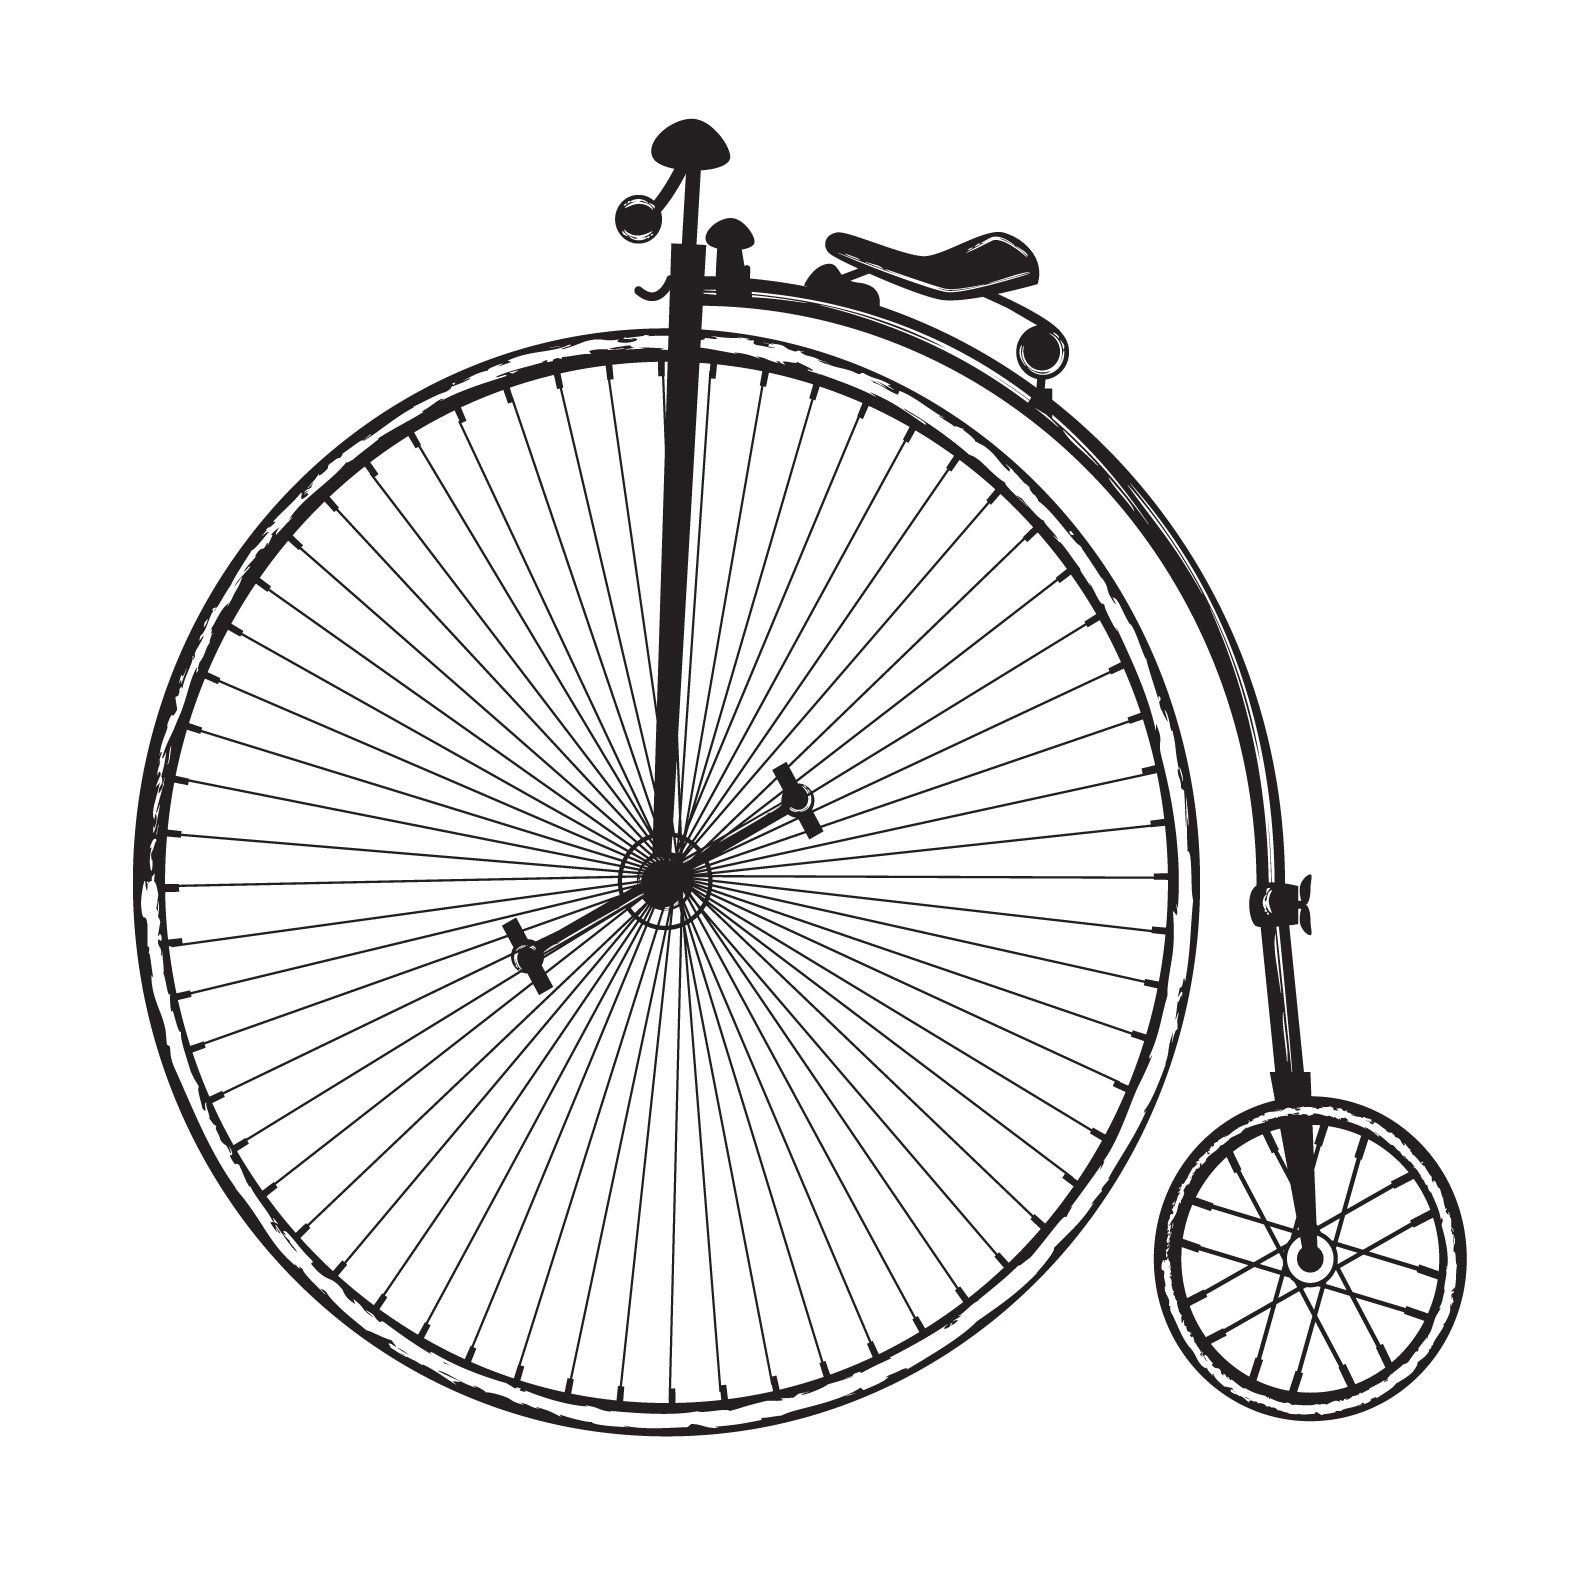 banner royalty free Free clip images art. Biking clipart vintage bicycle.